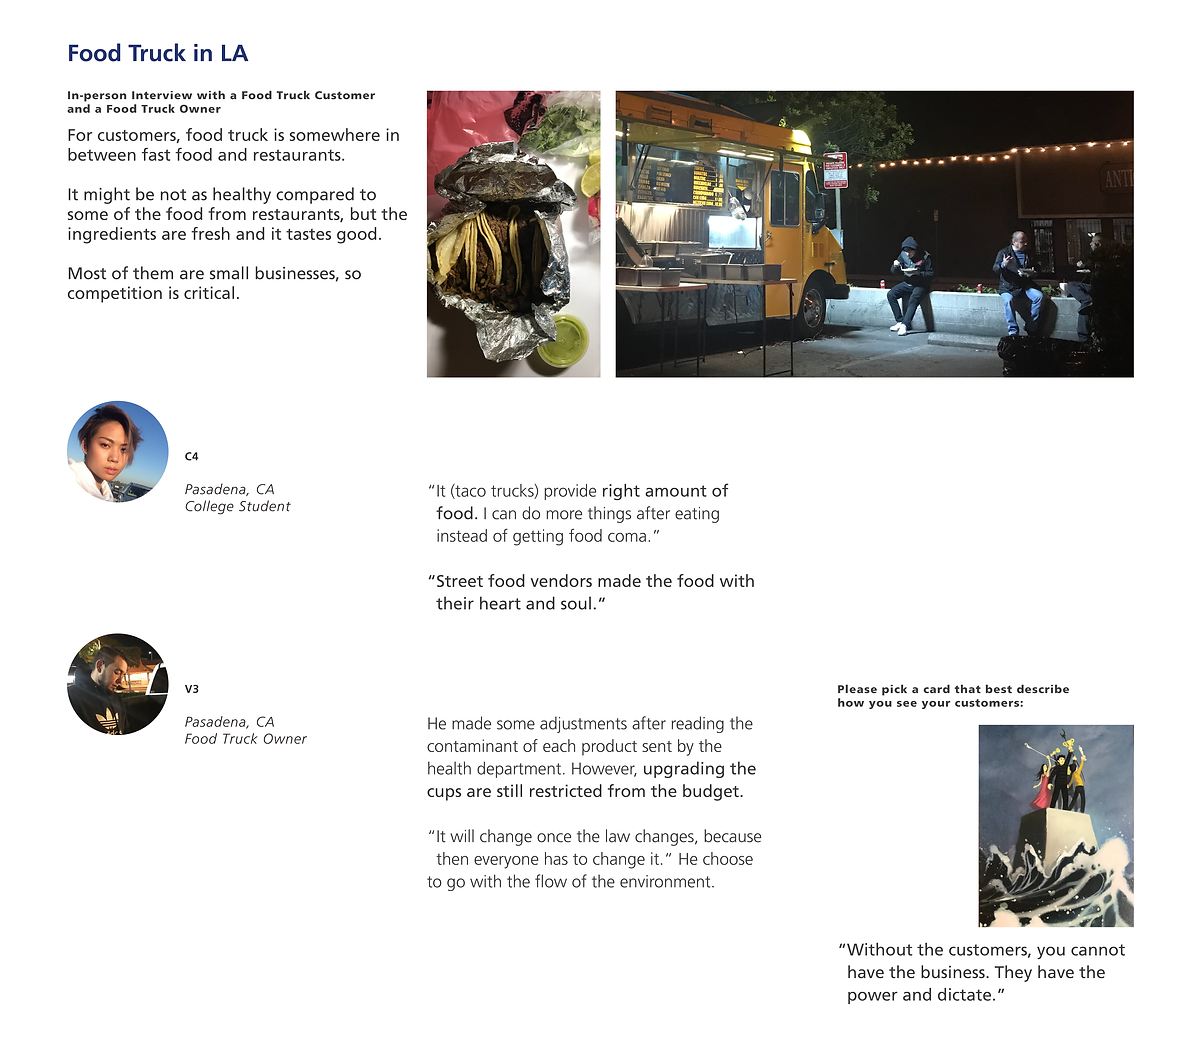 Research_ Food Truck in LA.png